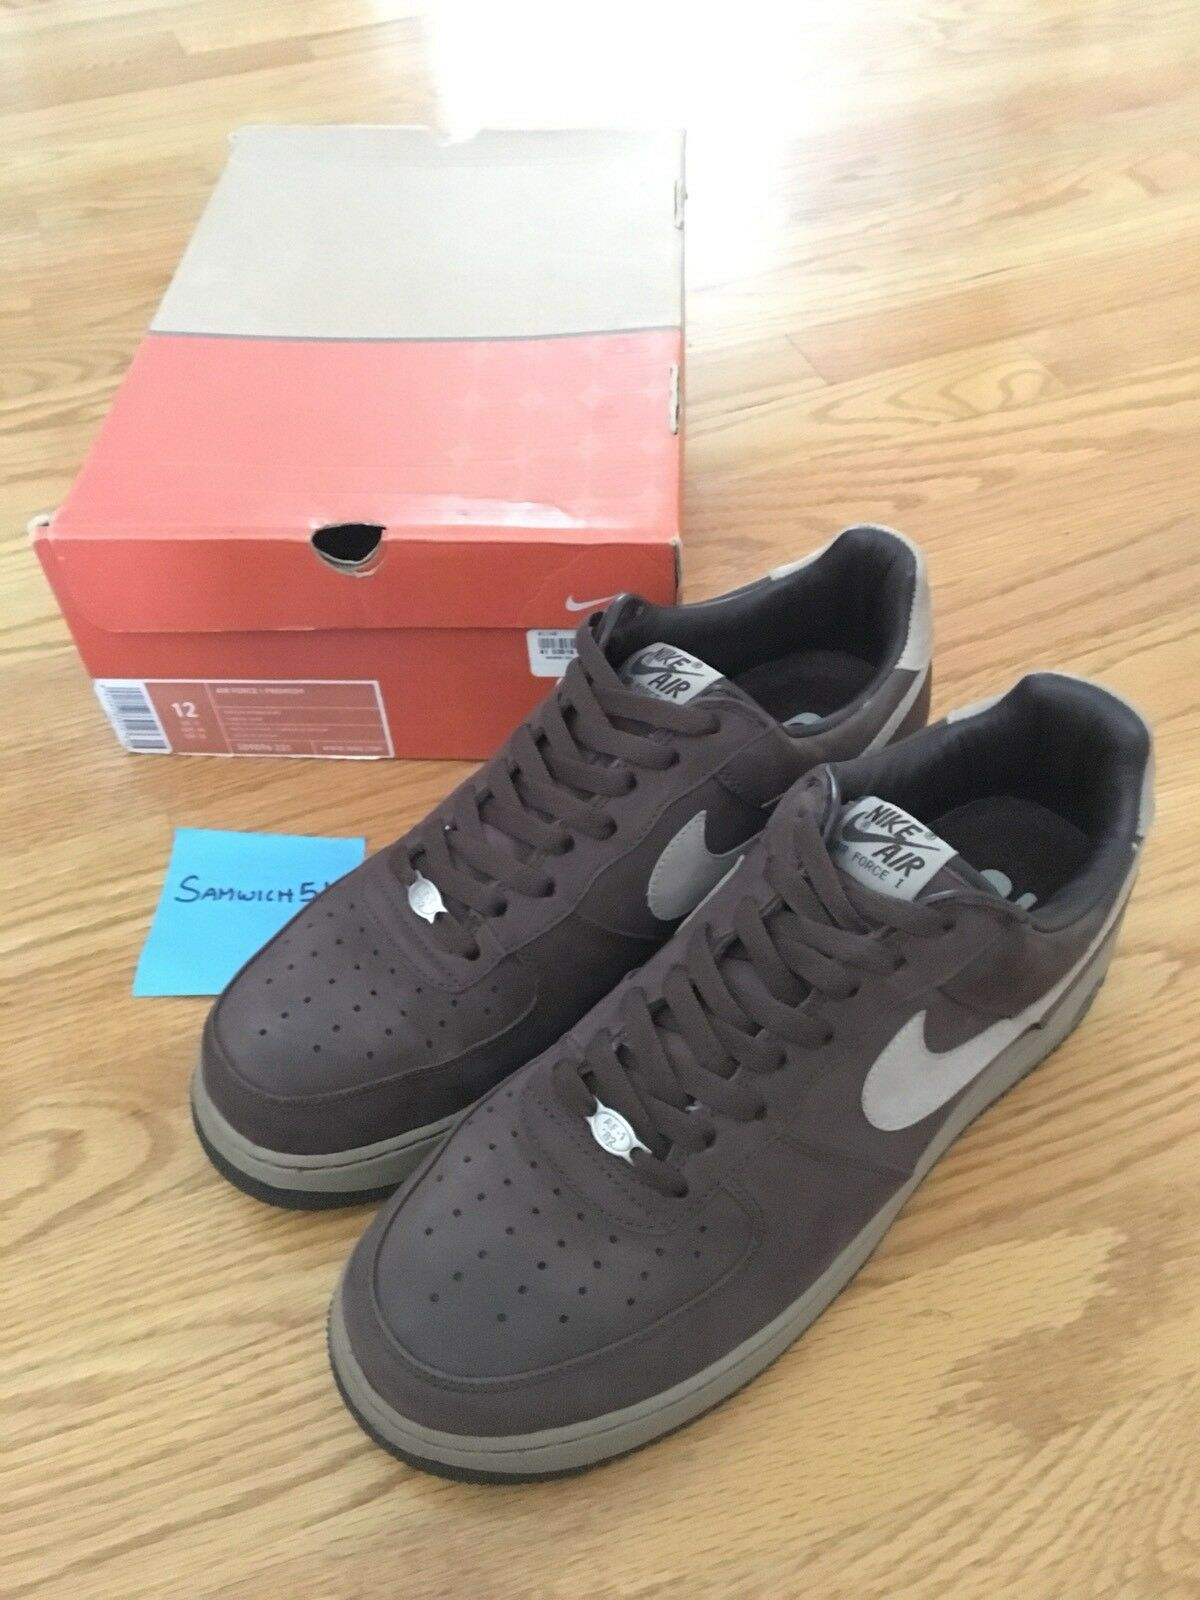 2018 Euro Release Air Force 1 Baroque Brown Sz 12 New shoes for men and women, limited time discount